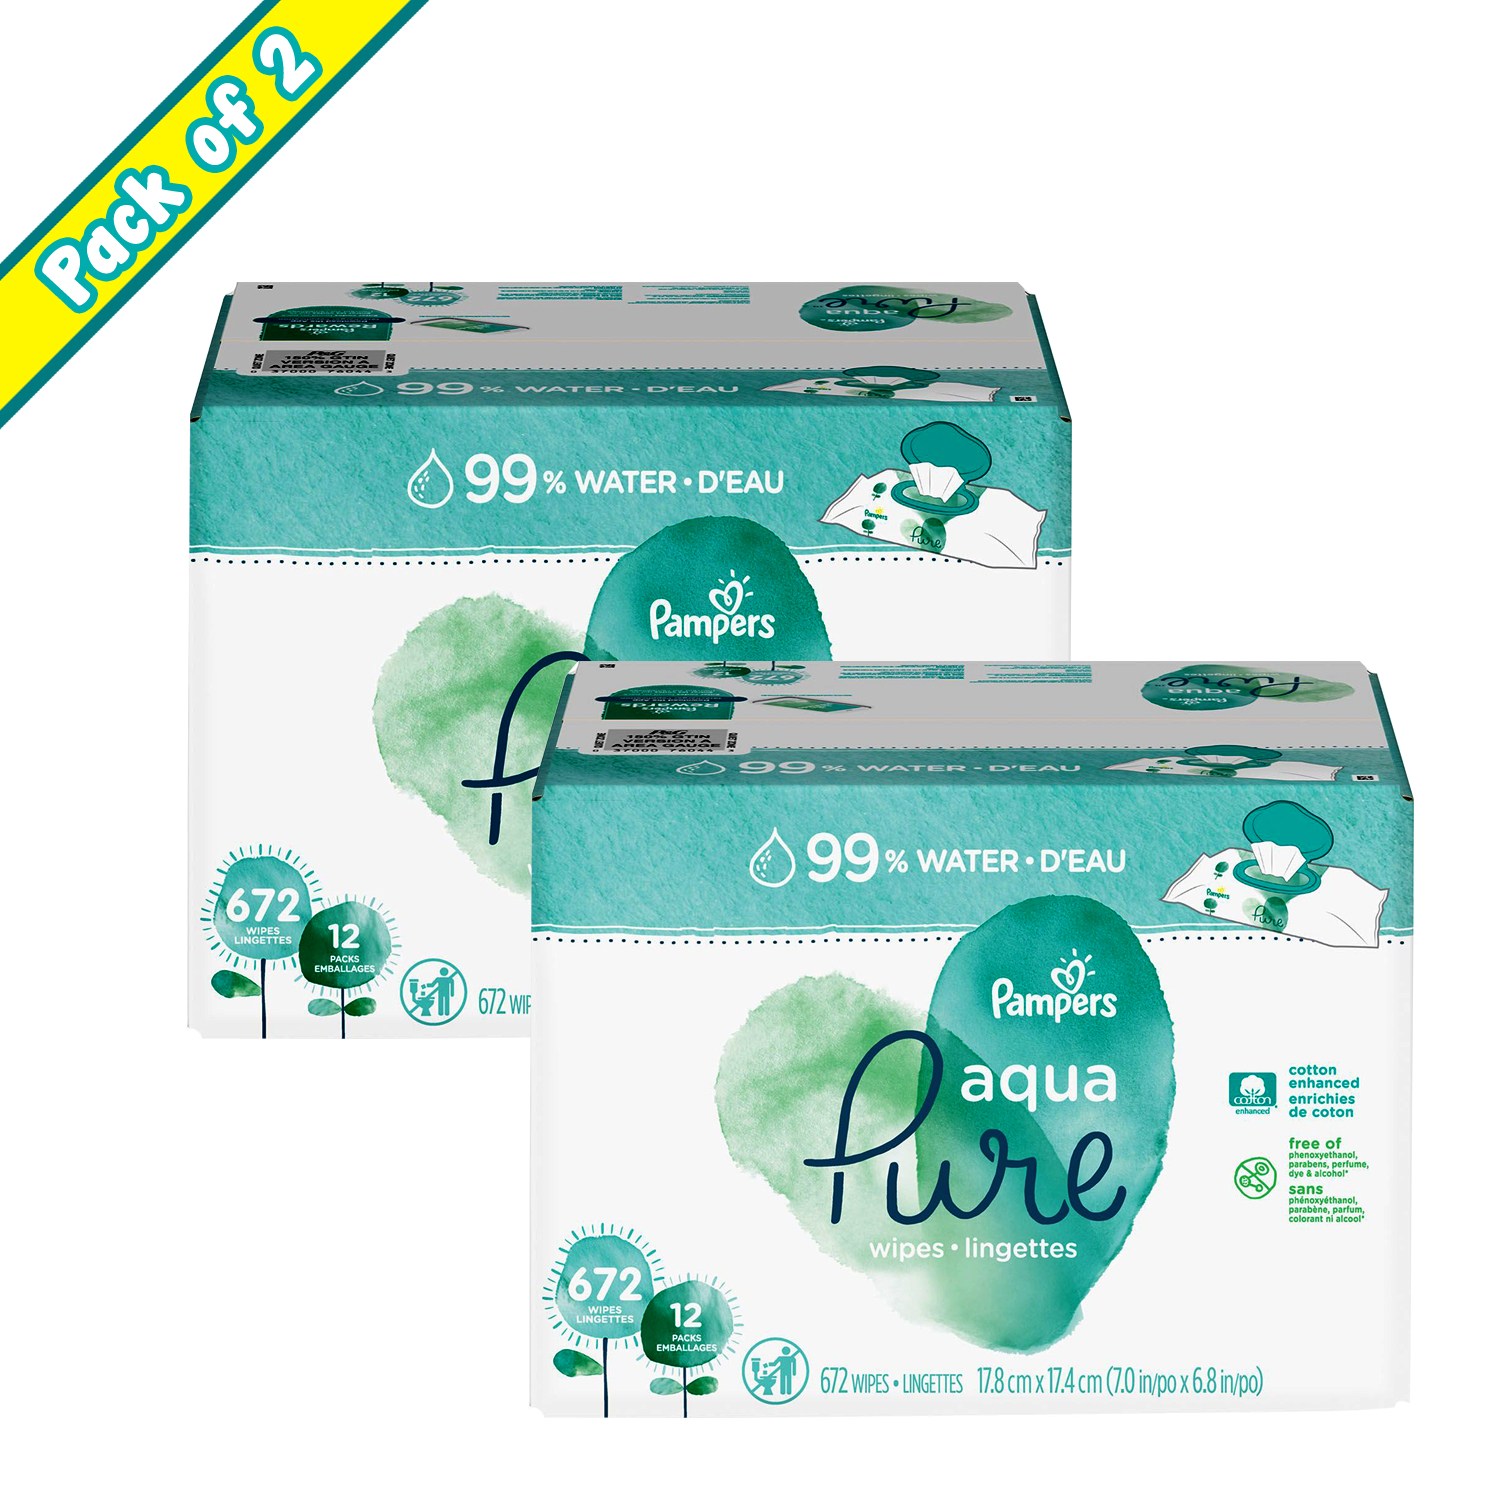 Pampers Aqua Pure Baby Wipes (672 ct.) - (PACK OF 2)